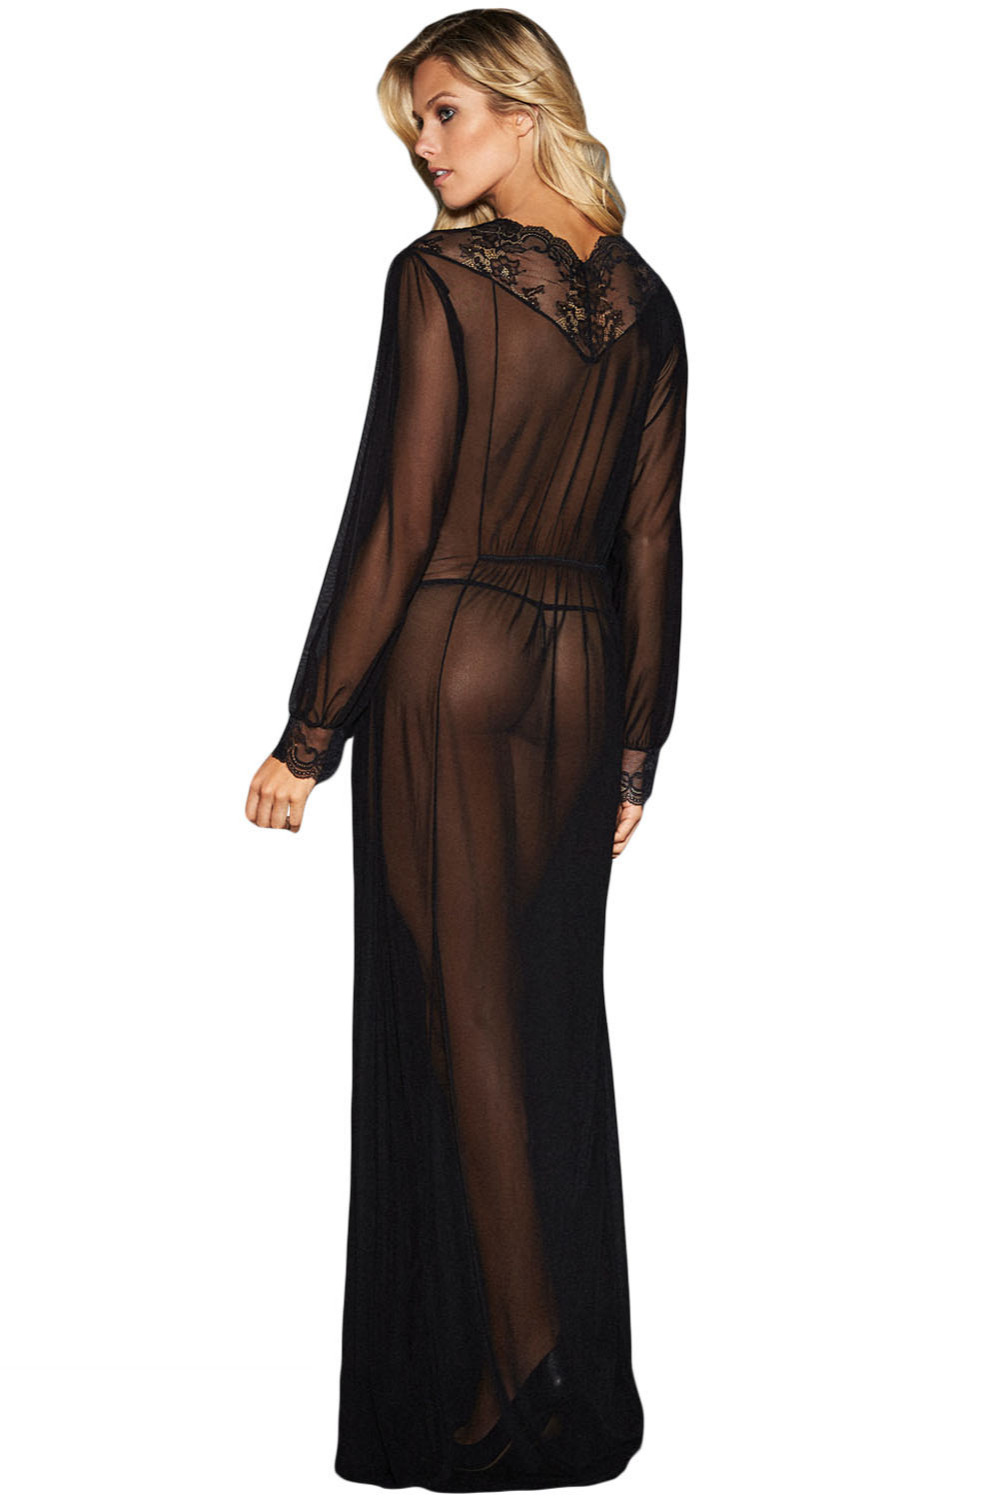 2018 New Summer Women s Sexy Black Sheer Long Sleeve Lace Robe Gown Long  Dress with Thong LGY31037-in Robes from Underwear   Sleepwears on  Aliexpress.com ... b63936945